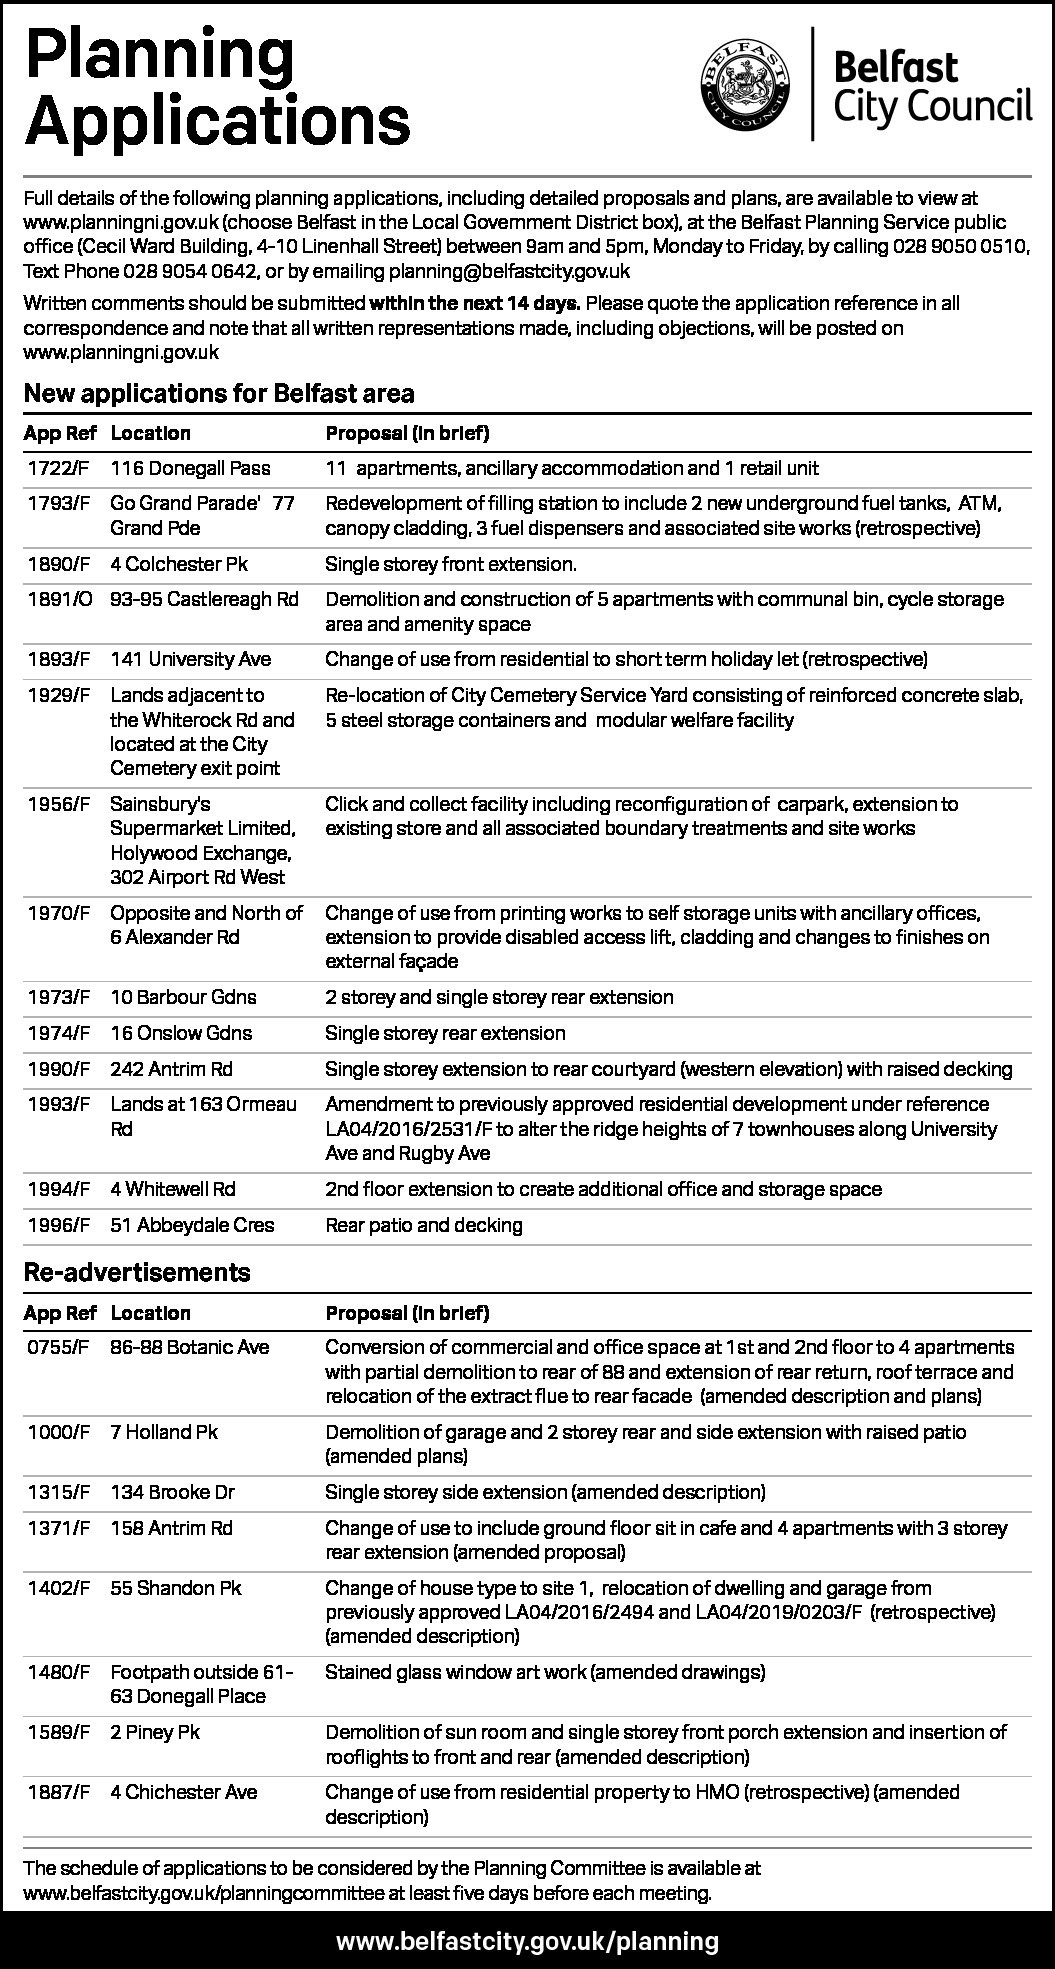 PLANNING APPLICATIONS - Belfast City Council  - Public Notices in Northern Ireland